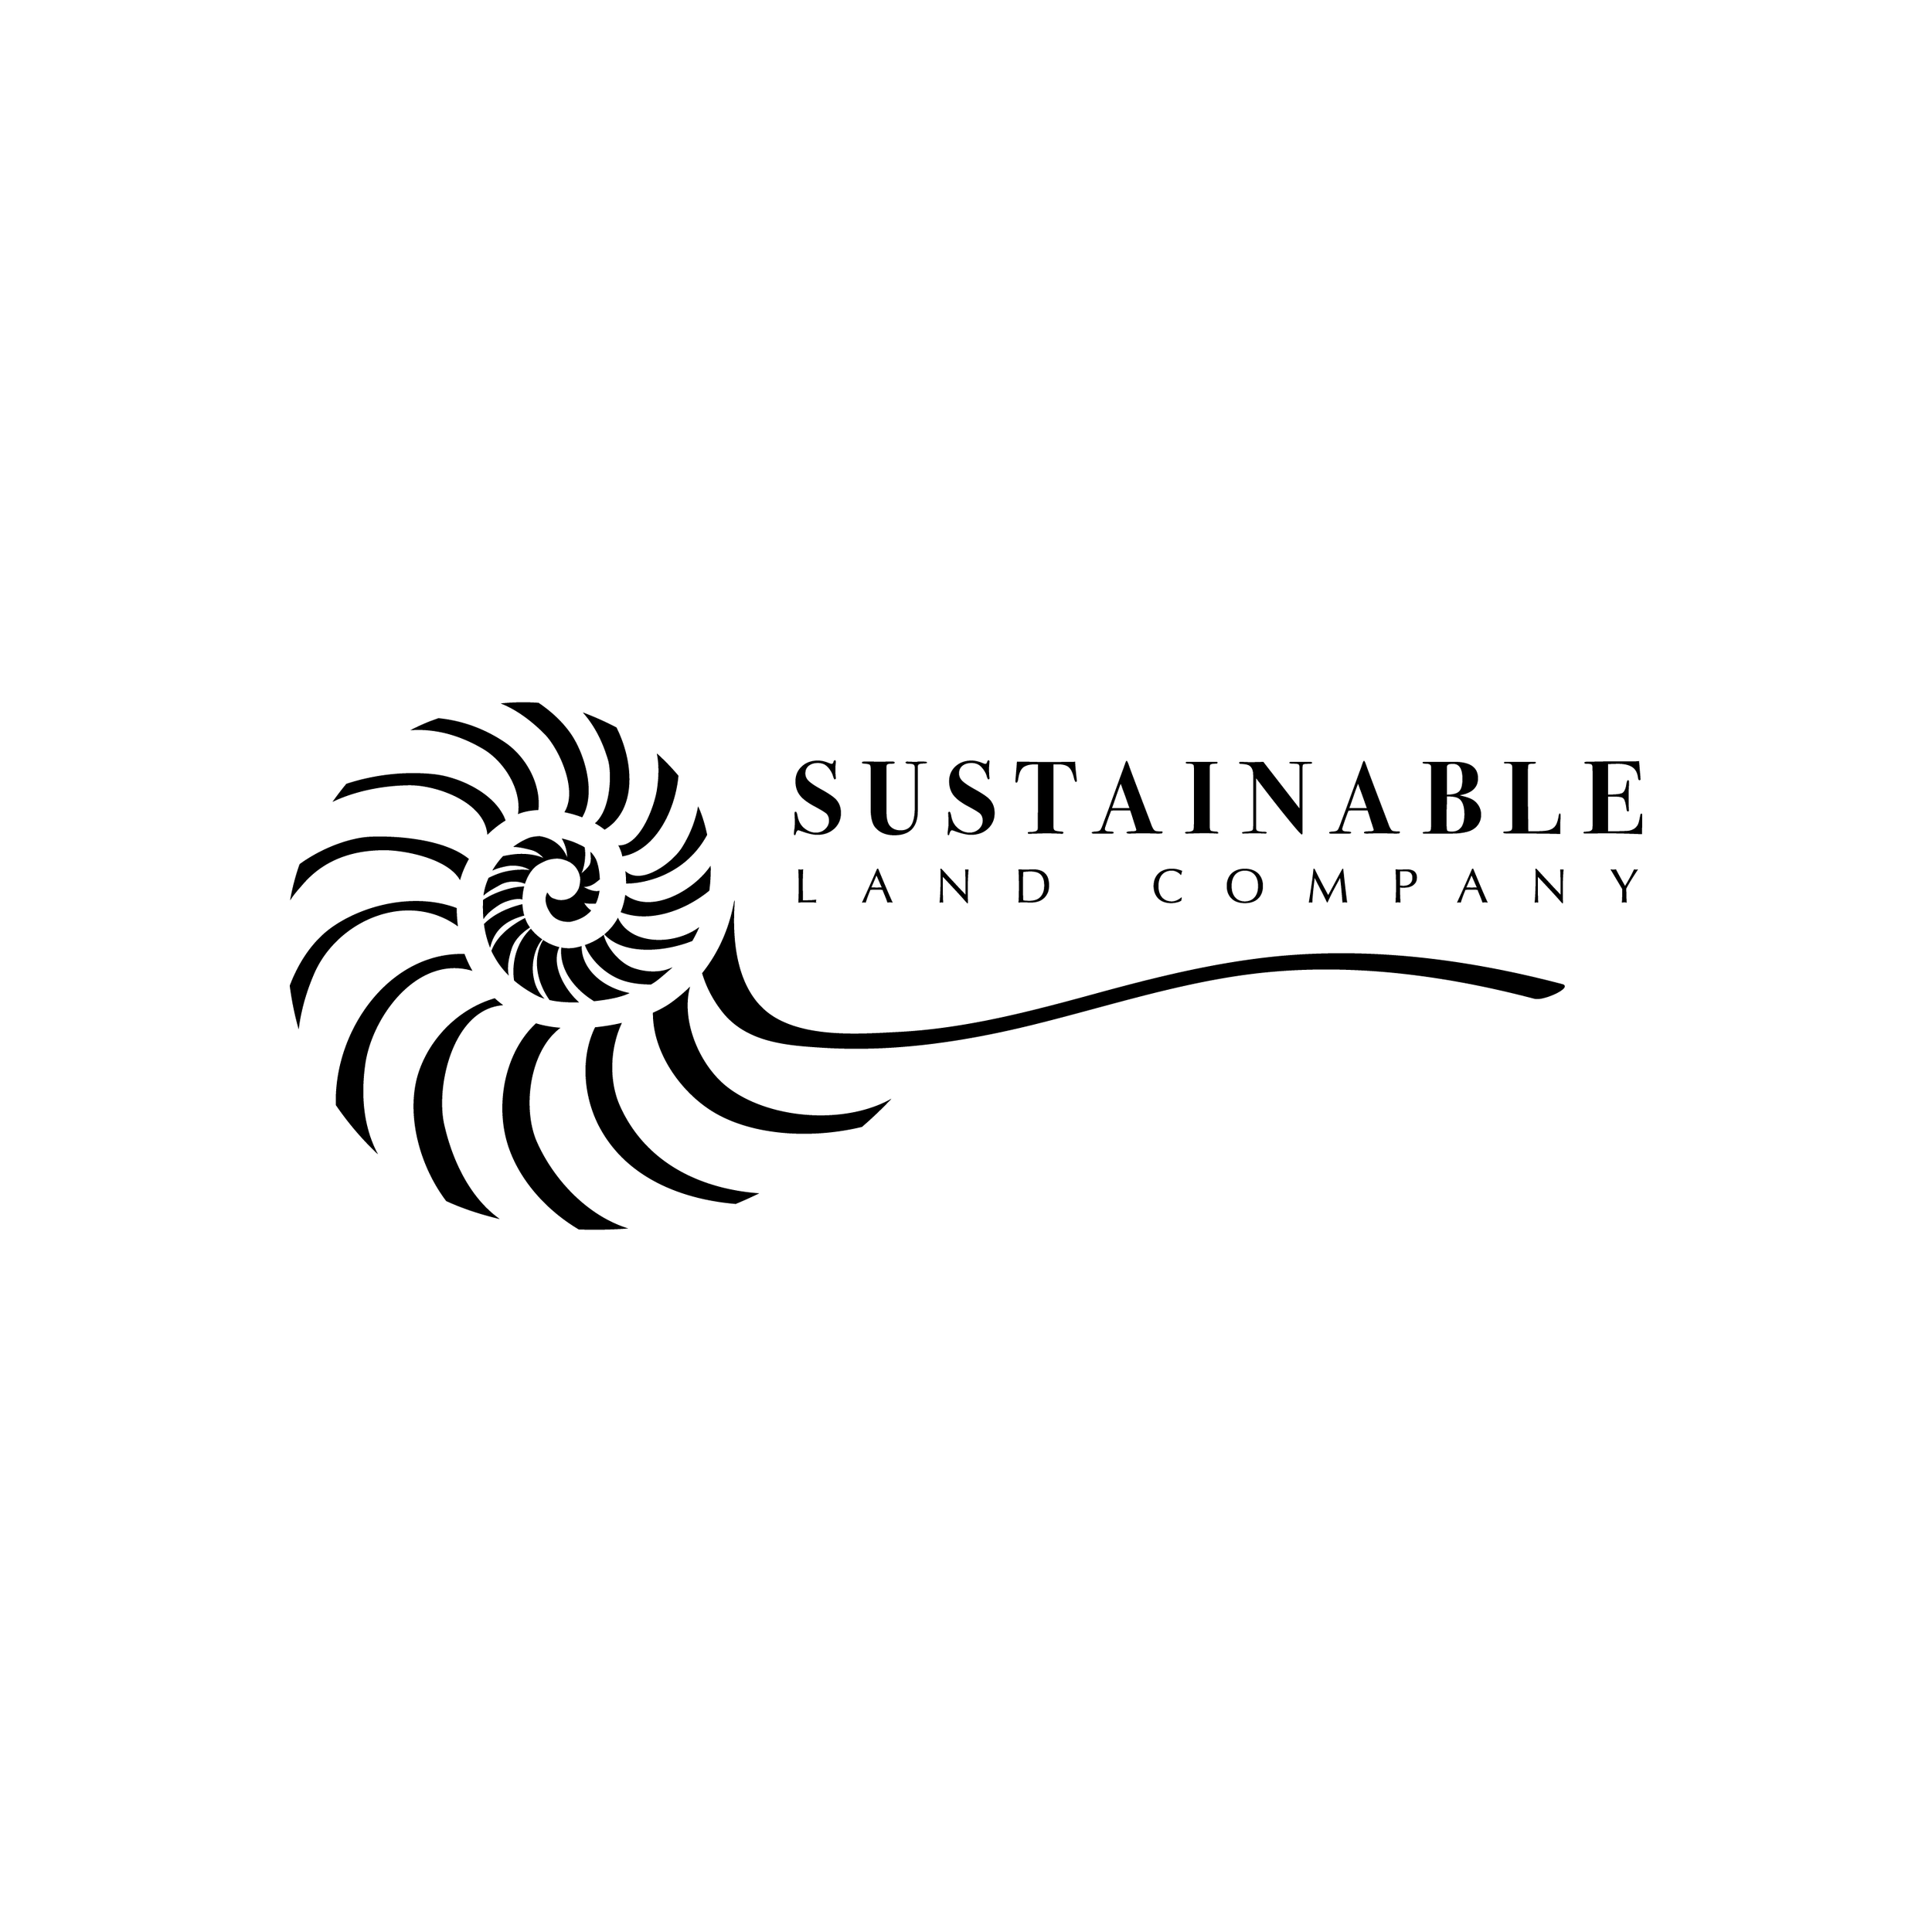 Sustainable Land Company Logo Design